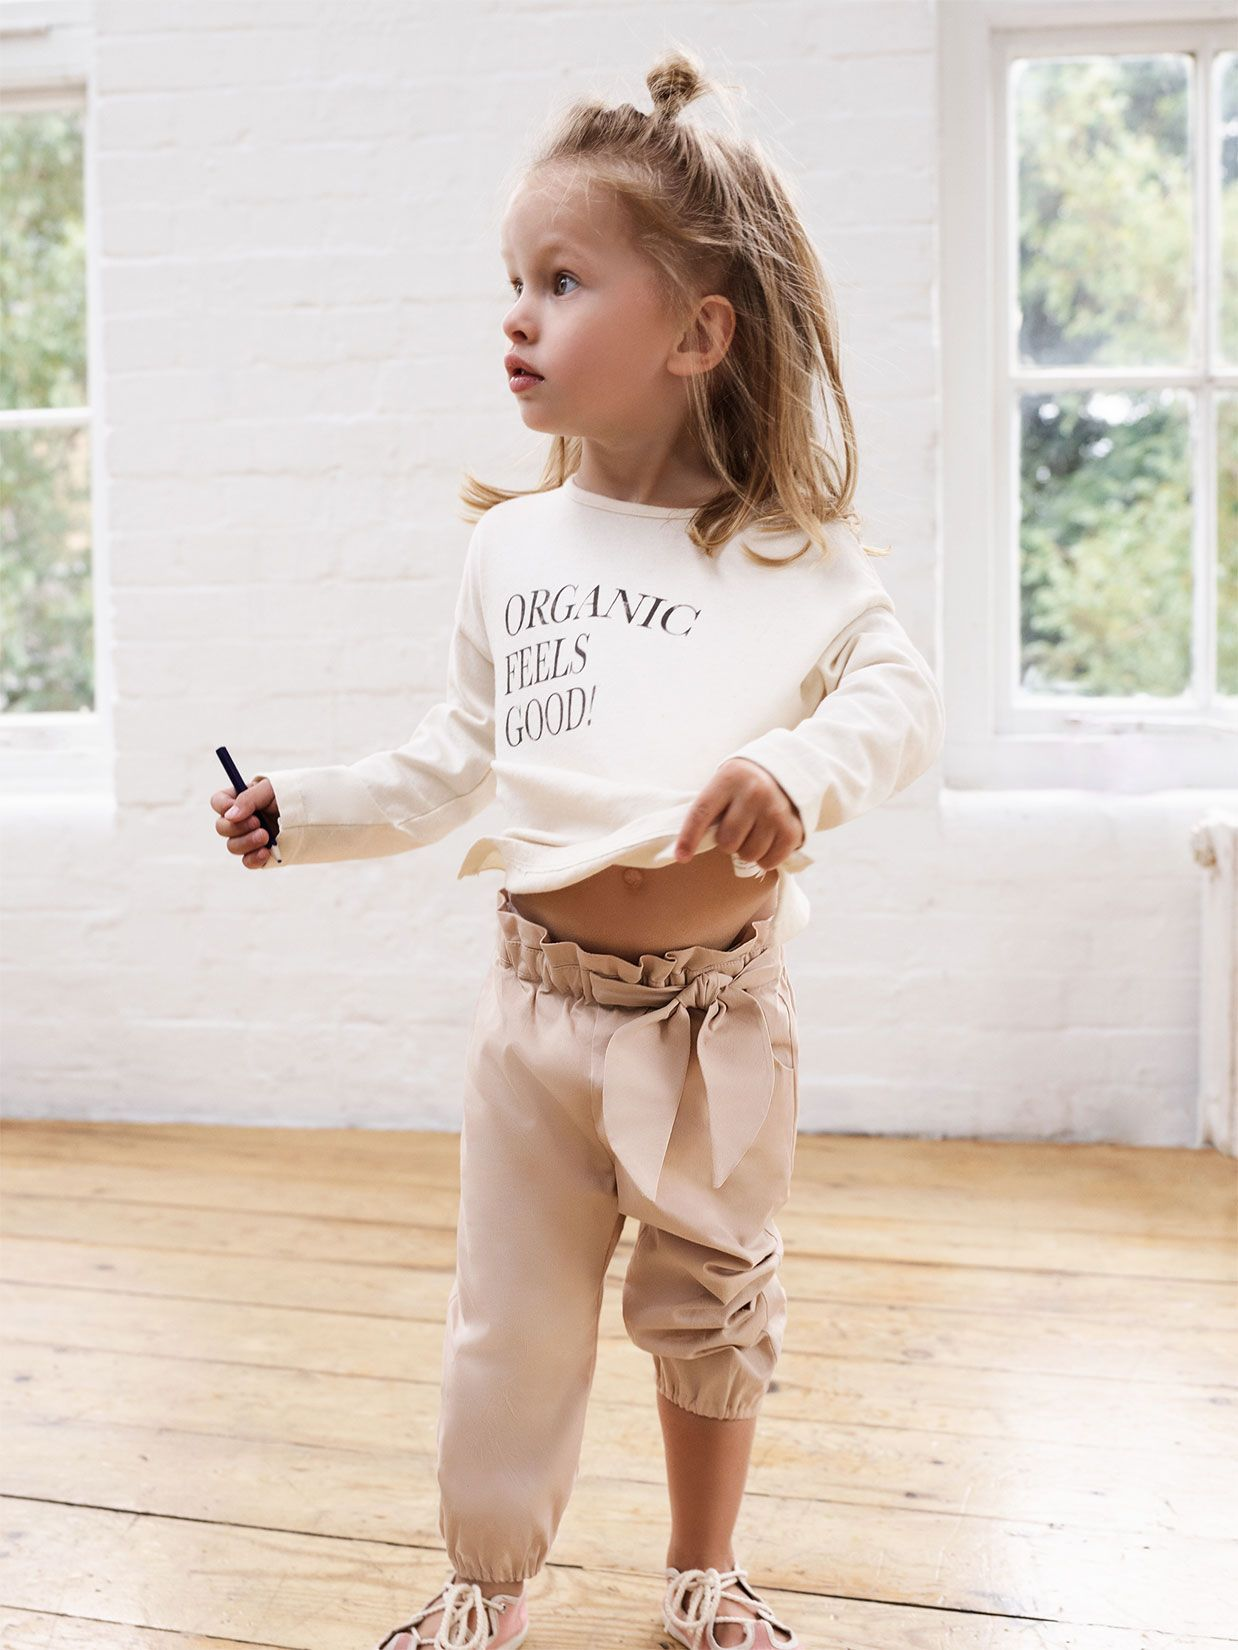 JOIN LIFE BABY GIRL KIDS EDITORIALS